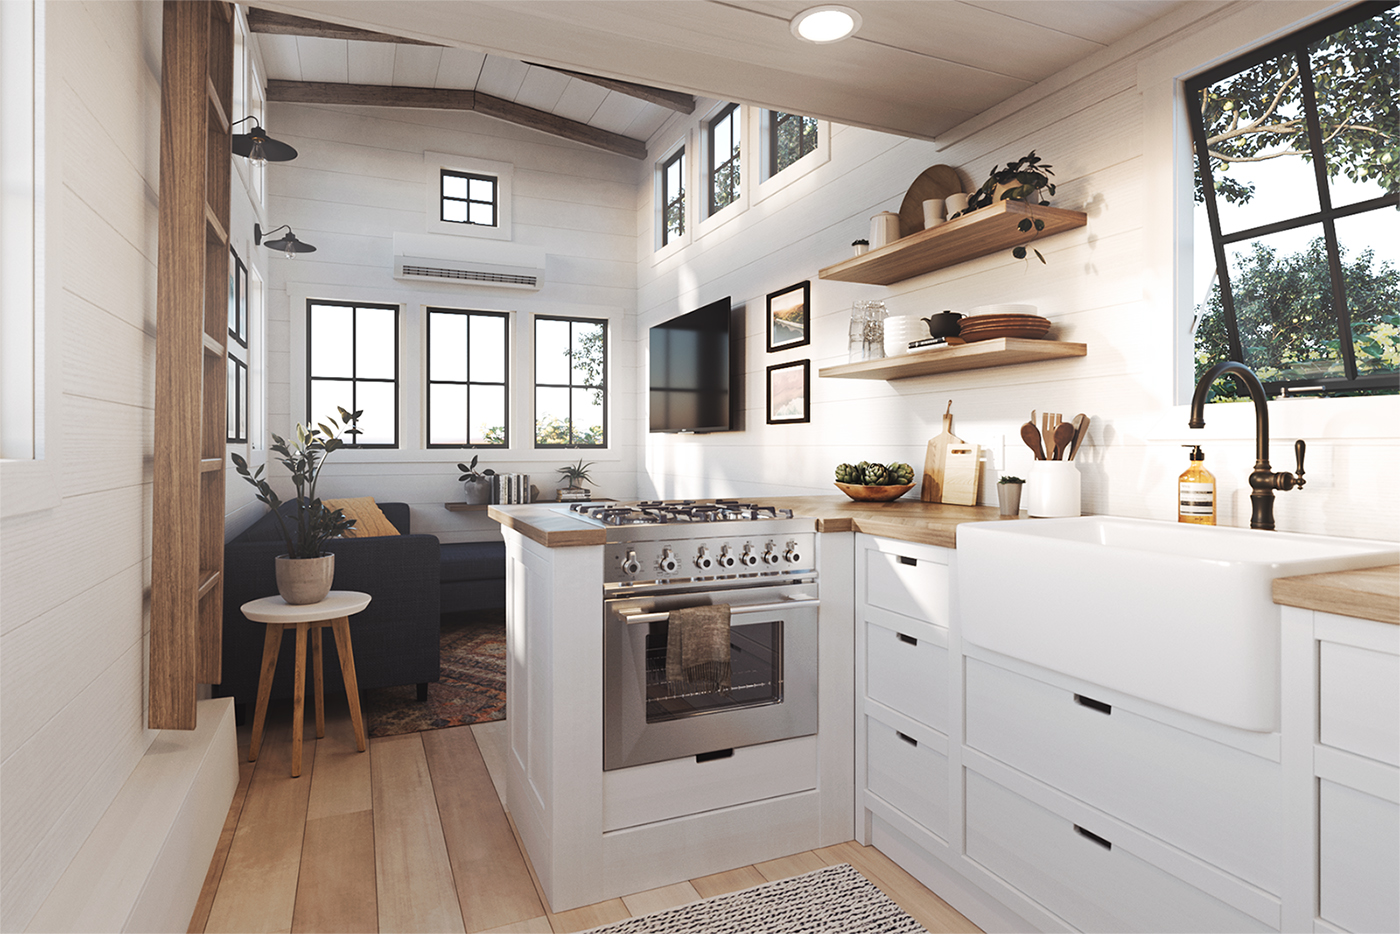 tiny houses targeting millennials come preloaded with amenities curbed. Black Bedroom Furniture Sets. Home Design Ideas